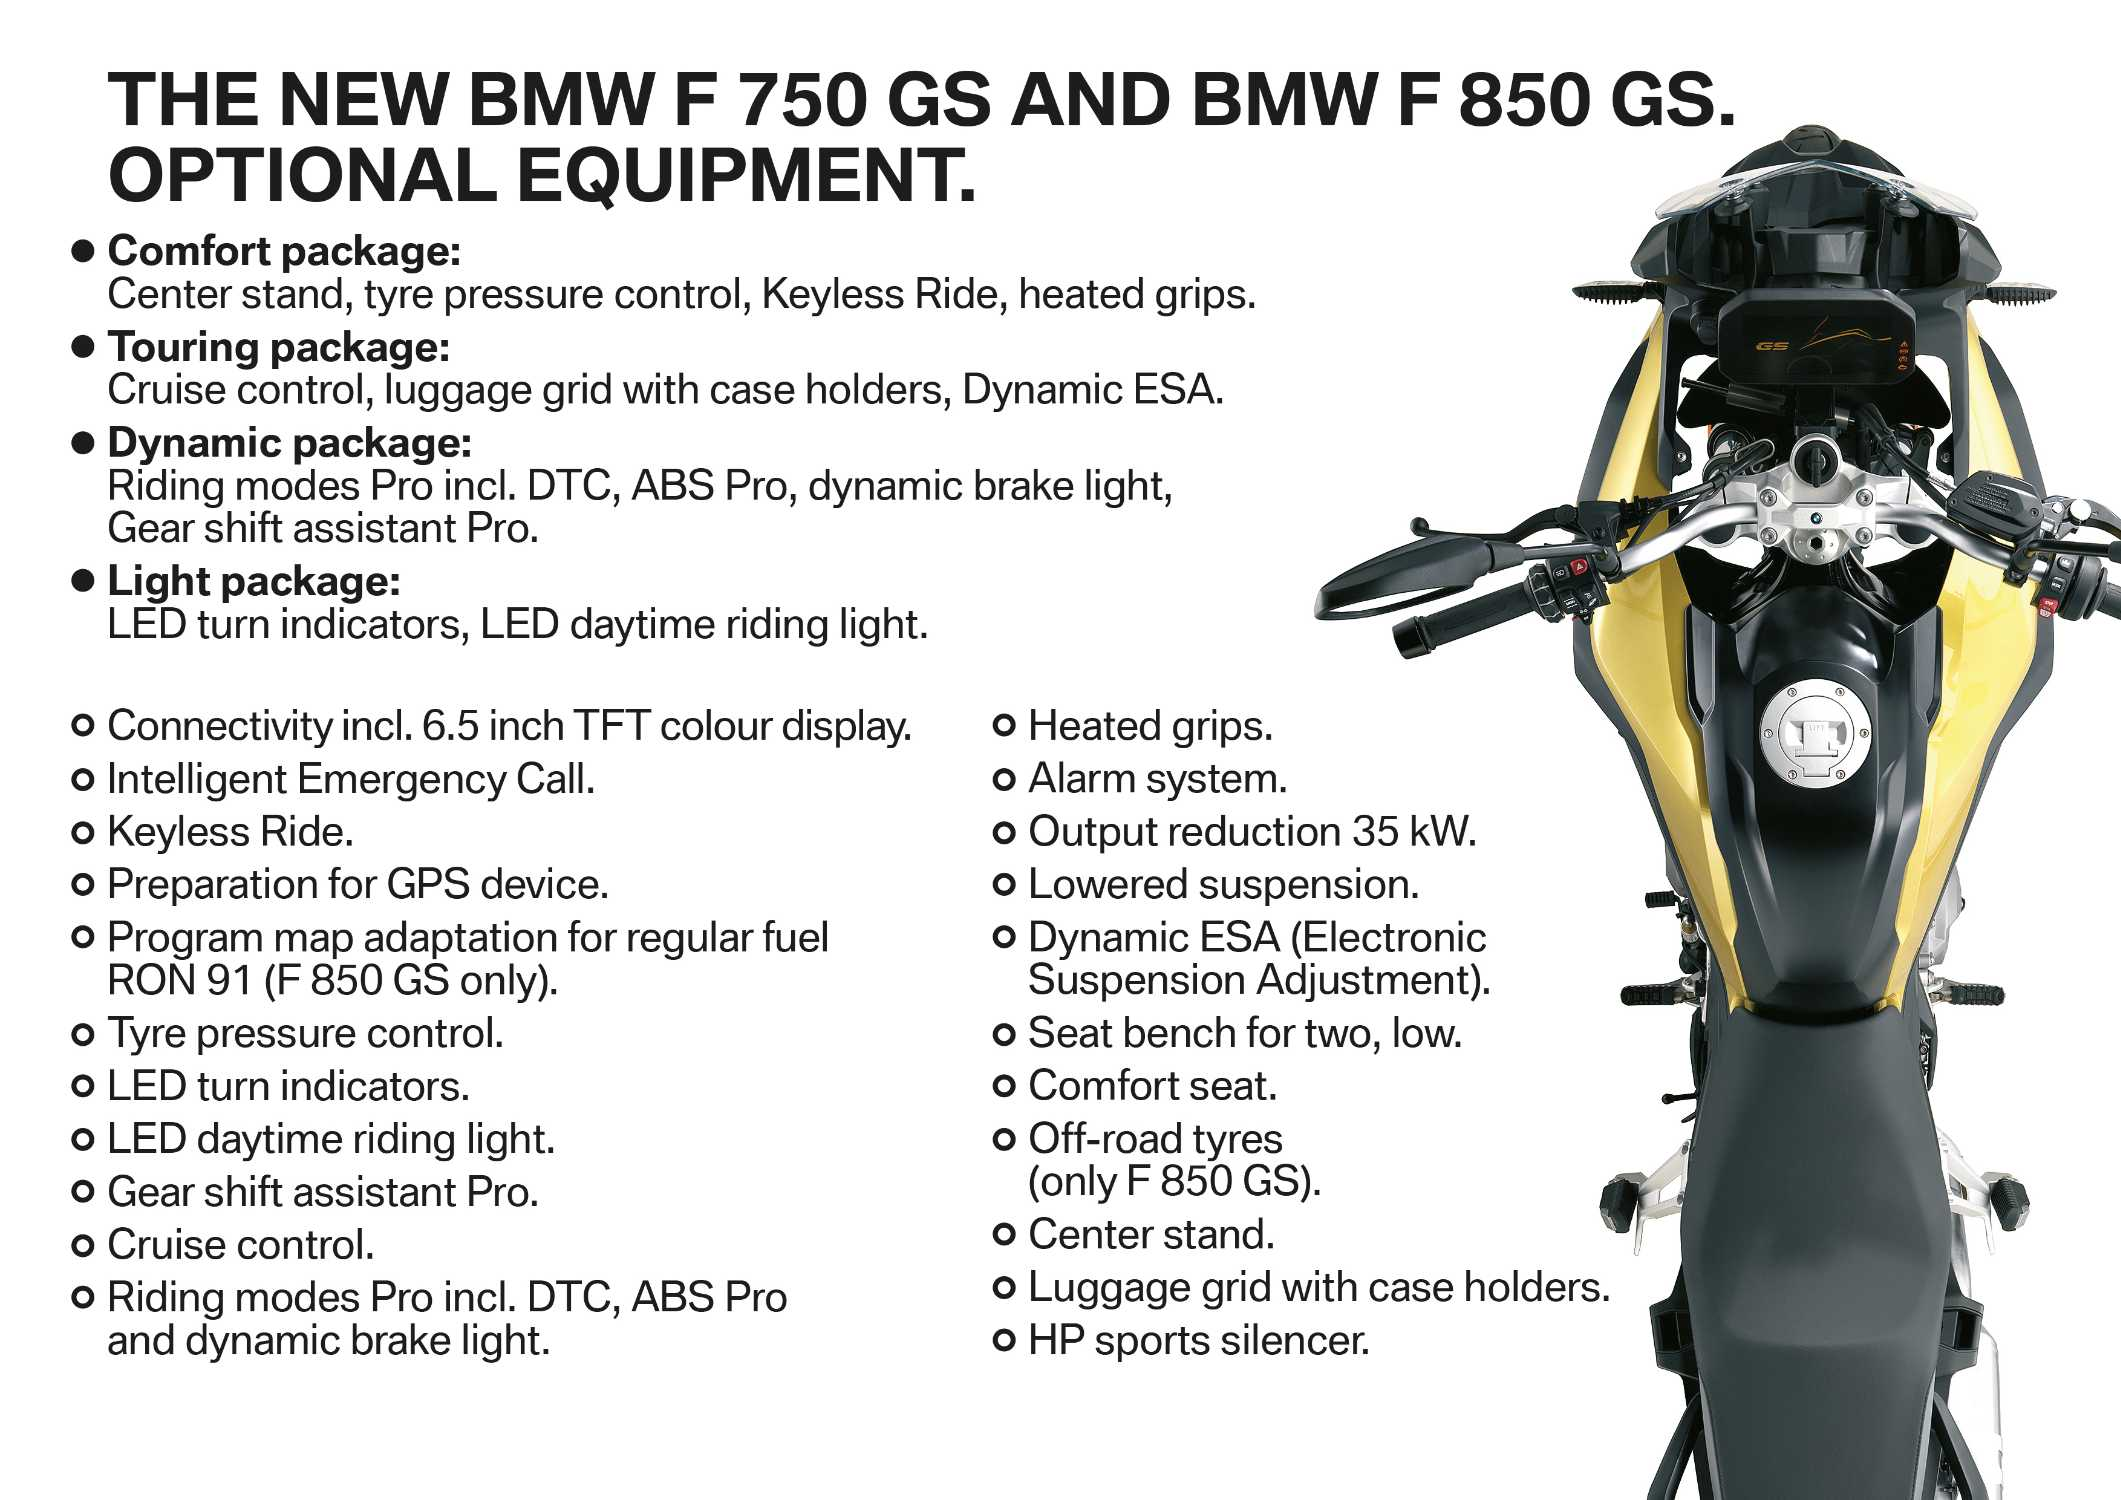 BMW F 750 GS and F 850 GS  Optional equipment  (02/2018)